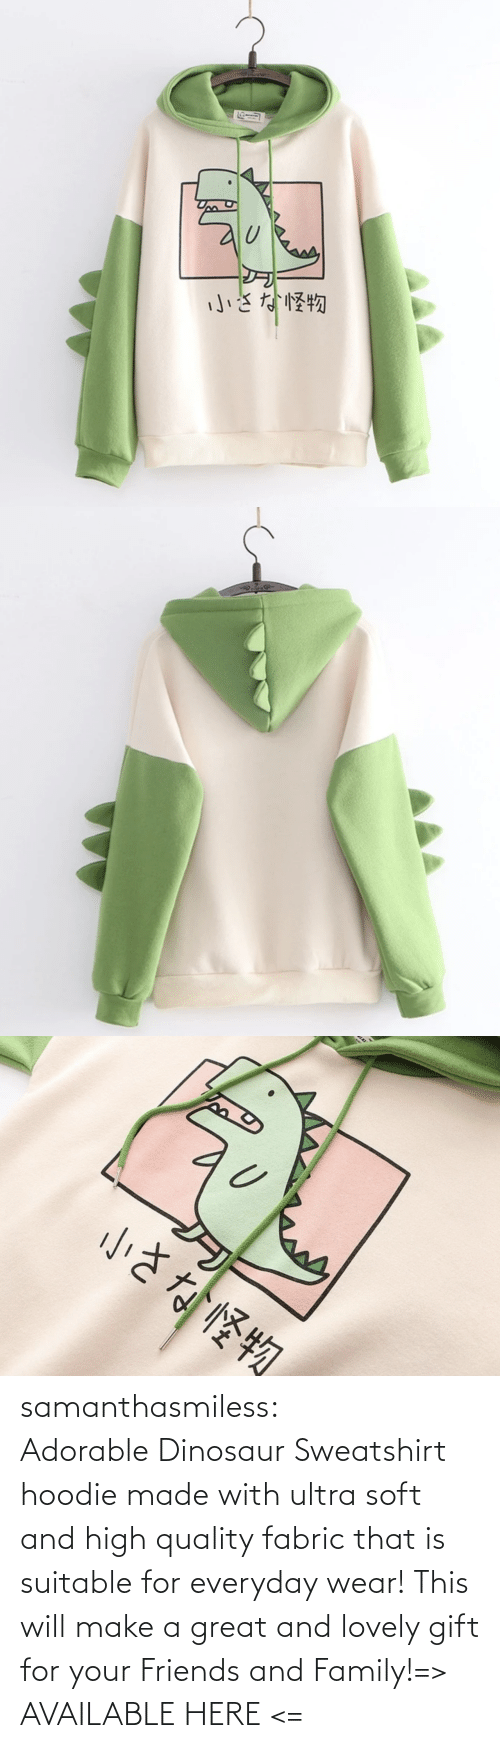 Adorable: samanthasmiless:  Adorable Dinosaur Sweatshirt hoodie made with ultra soft and high quality fabric that is suitable for everyday wear! This will make a great and lovely gift for your Friends and Family!=> AVAILABLE HERE <=